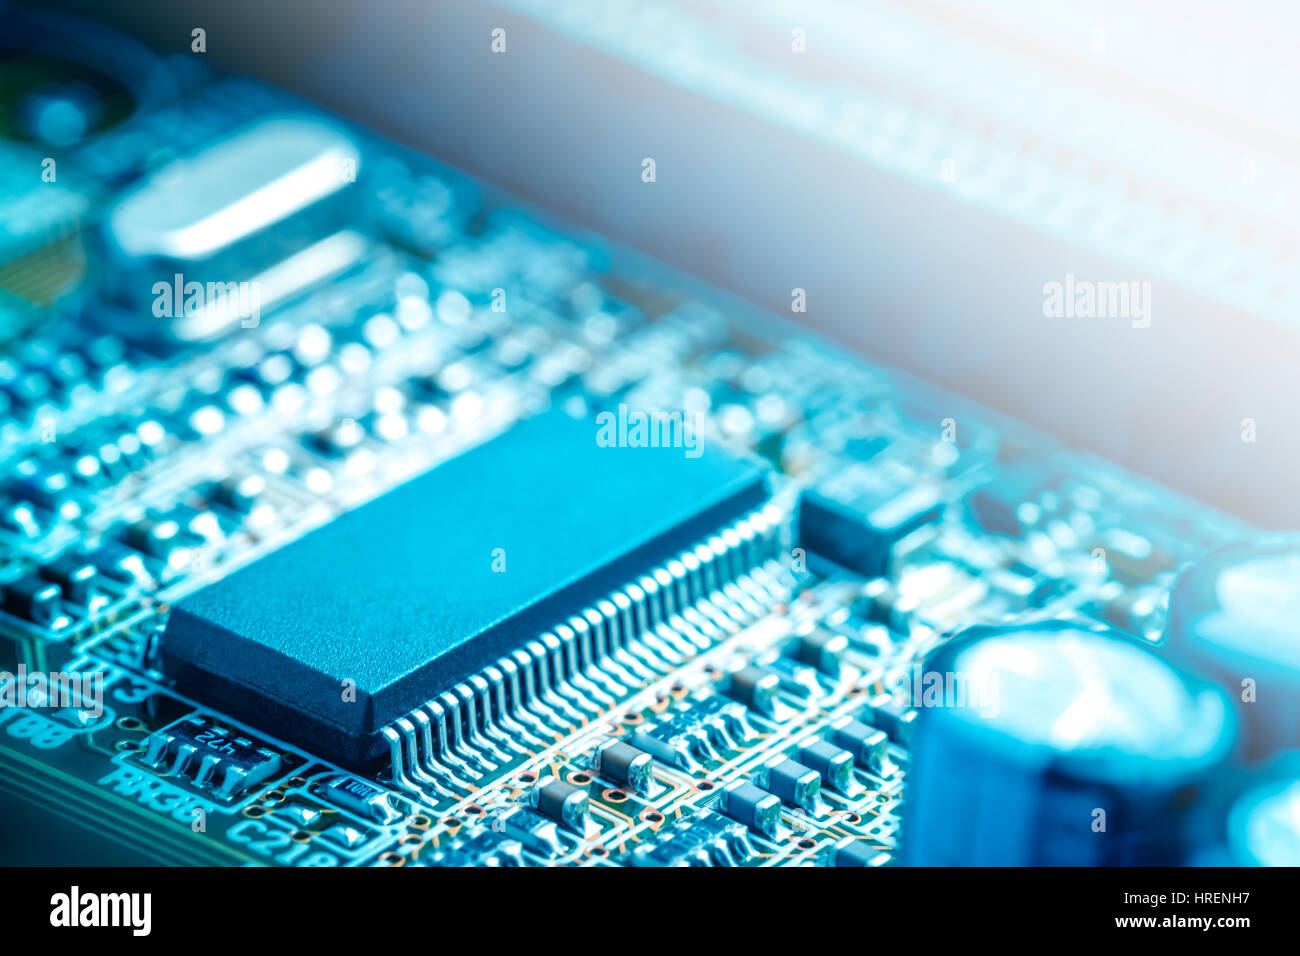 Semiconductor Resistor Transistor Motherboard Stock Photos Basics Of Electronic Circuit Close Up Board Image